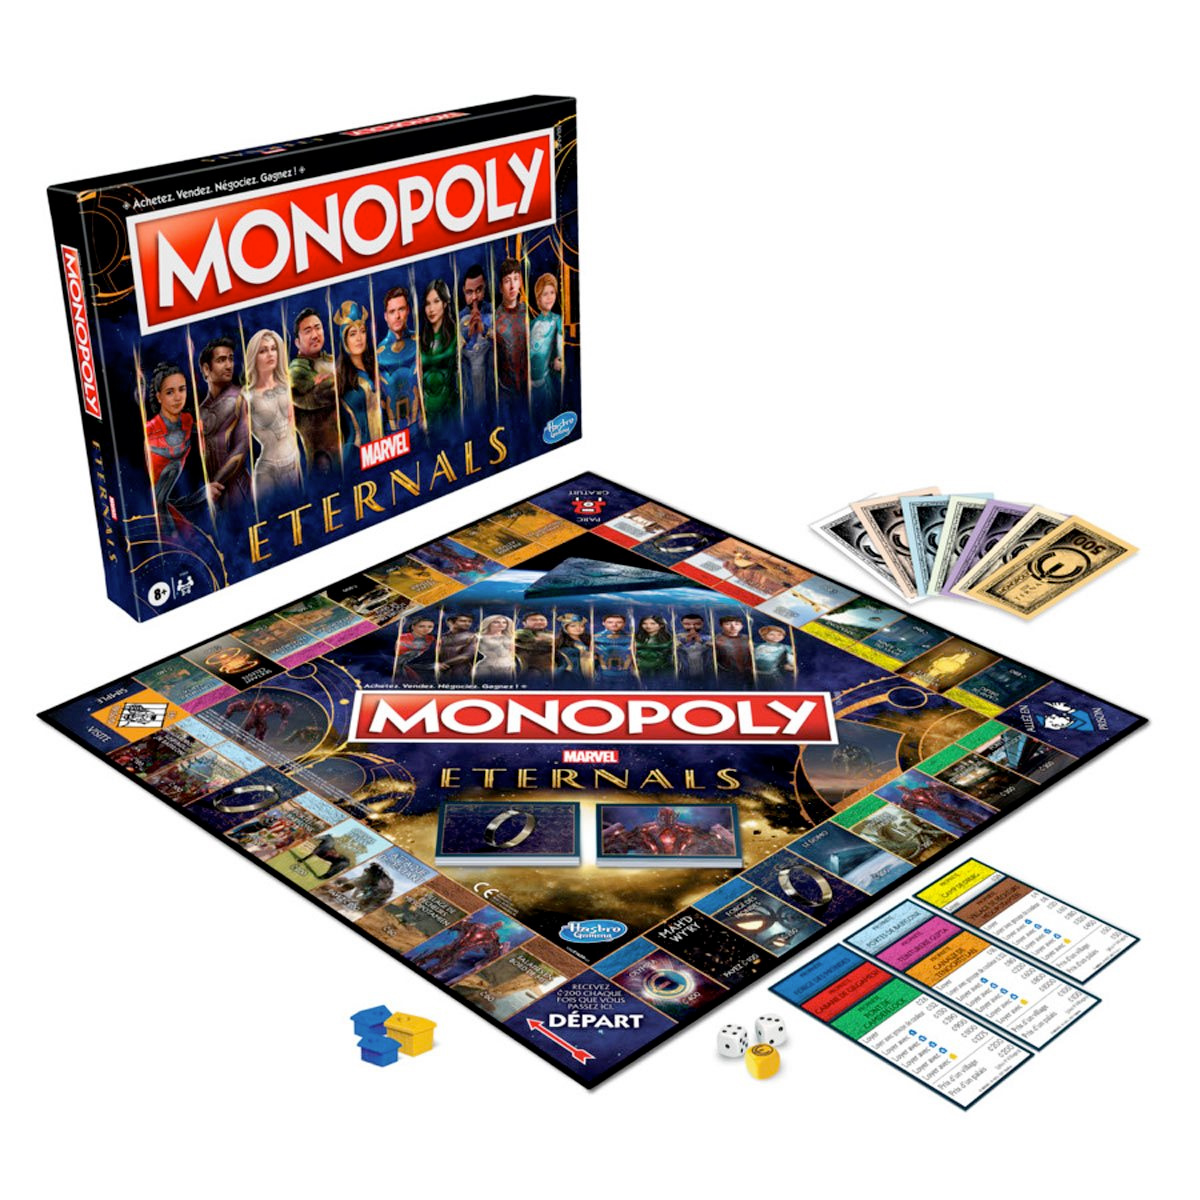 Eternals Edition Monopoly Board Game